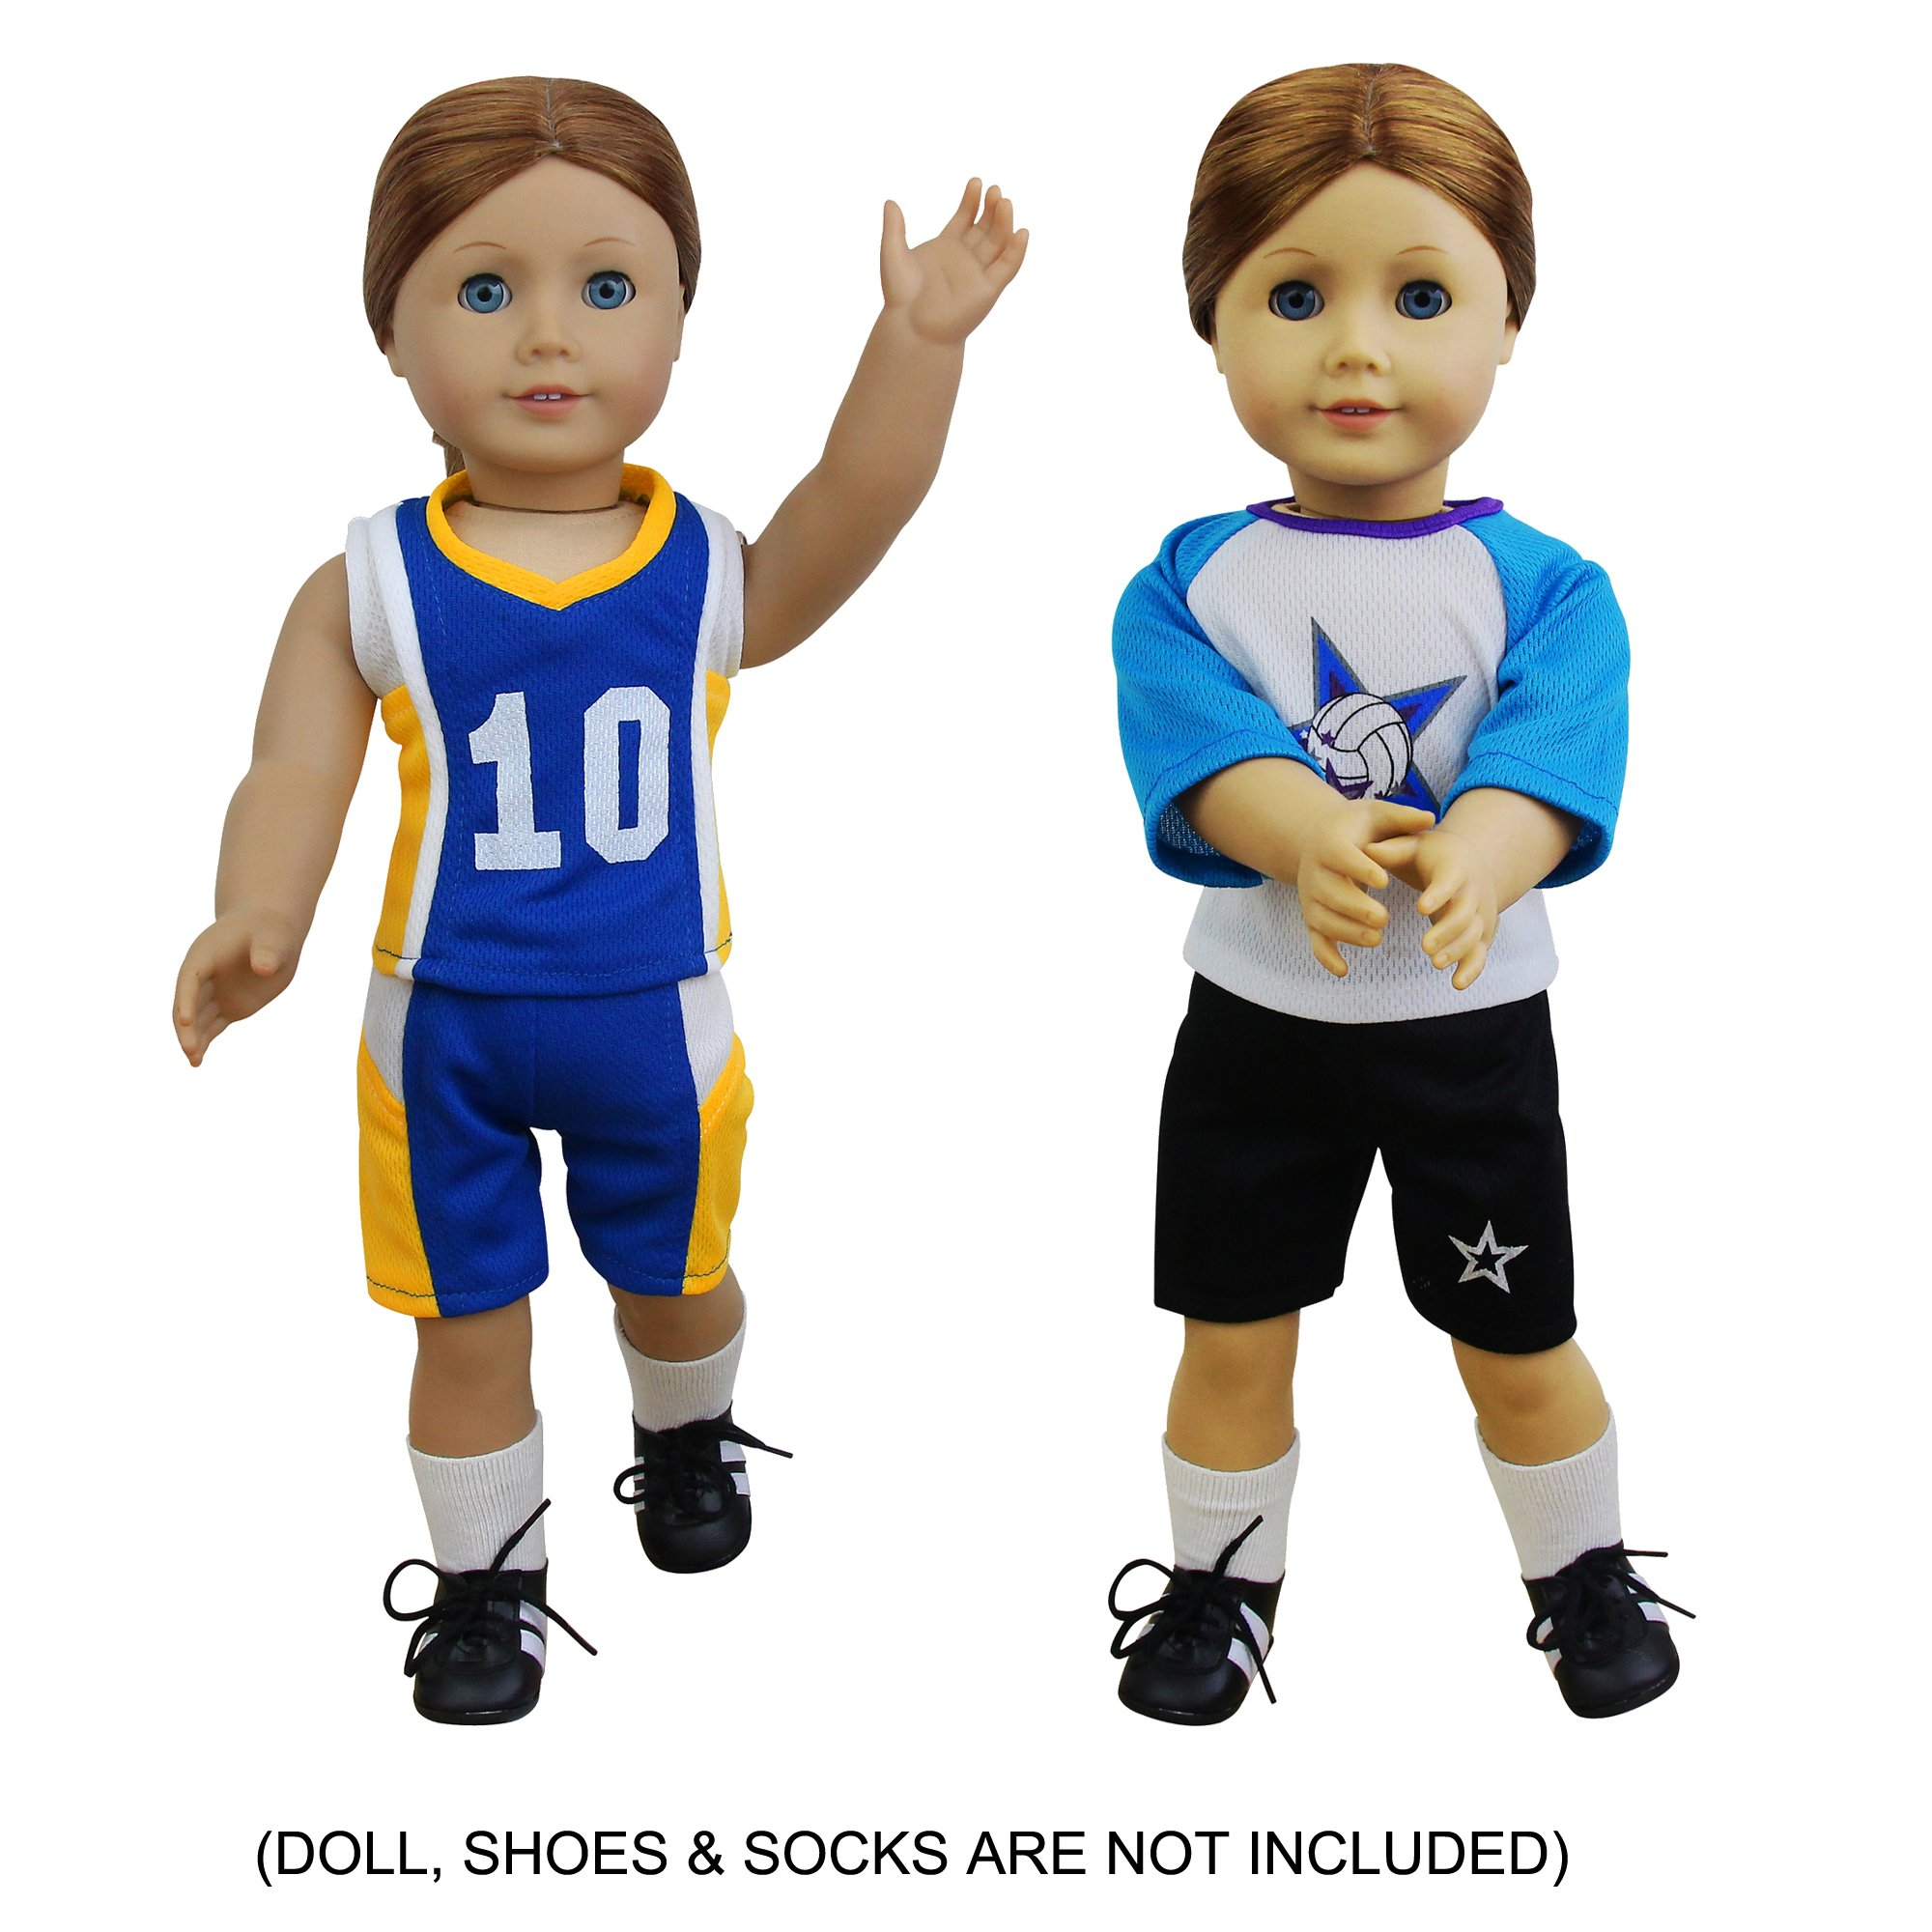 4 PCS American Girl Doll Sports Clothes & Accessories   Soccer, Basketball, Football, Volleyball Kit Equipment for 18'' Doll by ZITA ELEMENT